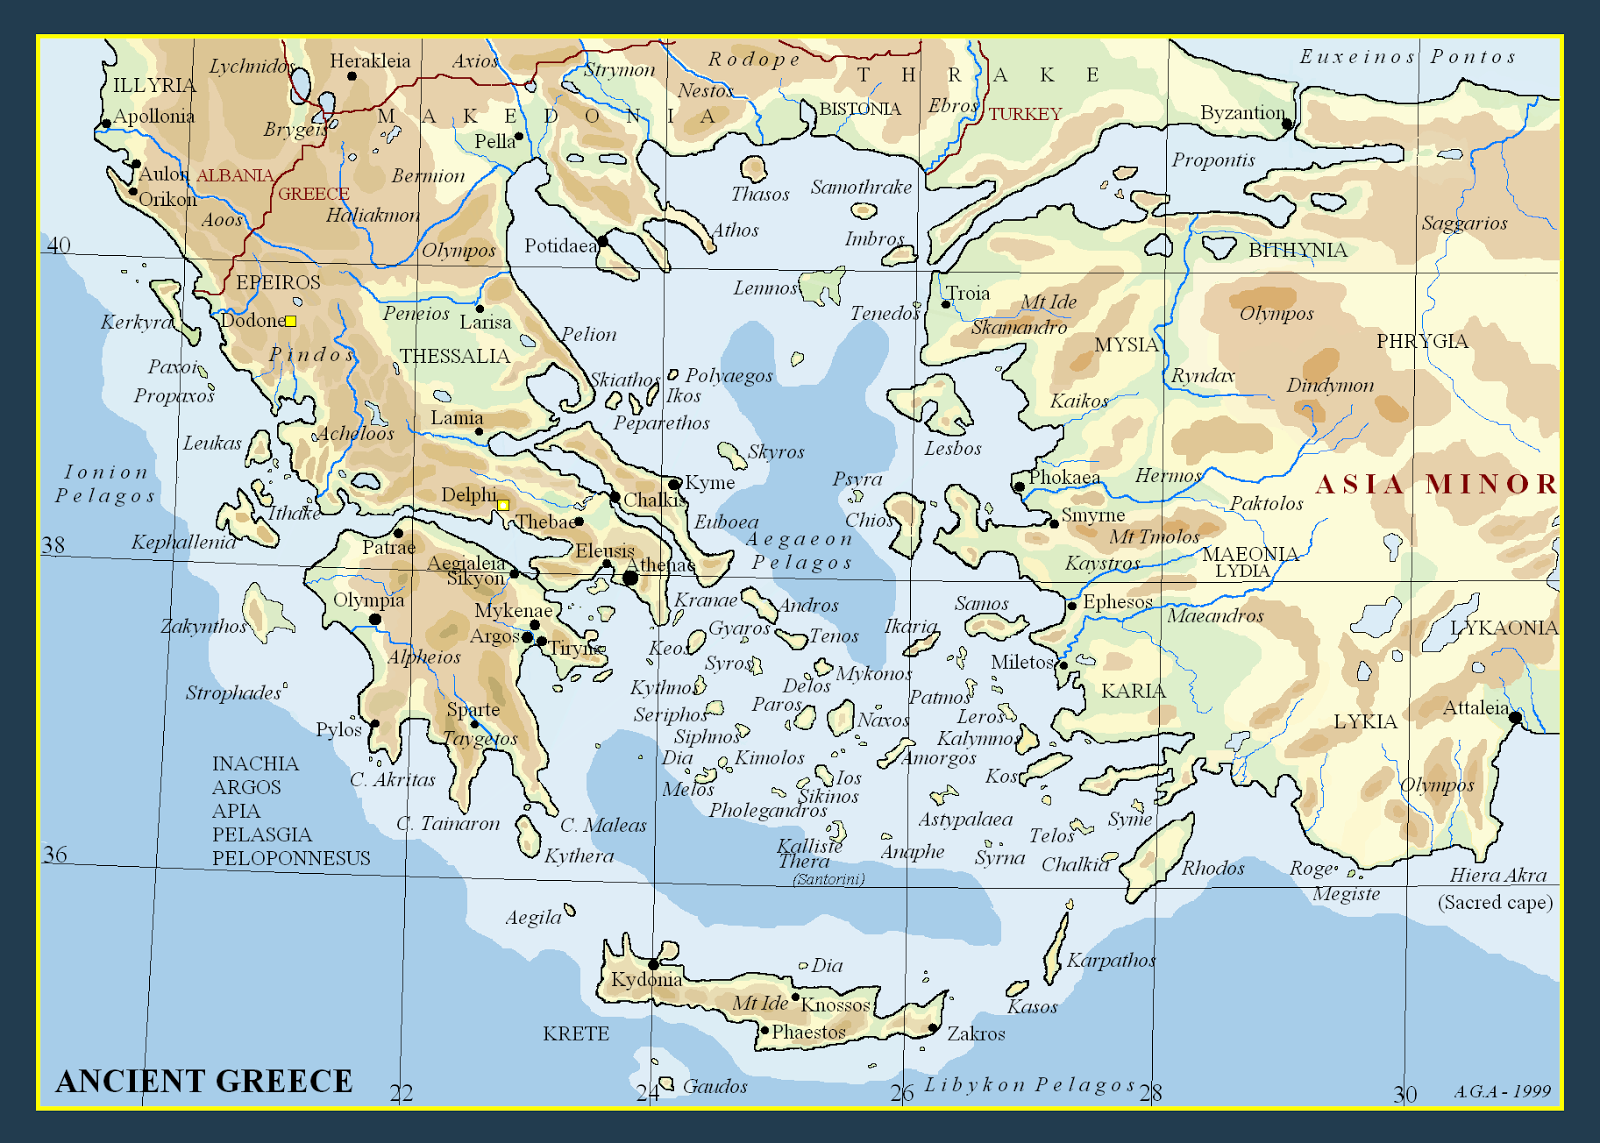 Metron ariston maps of ancient greece a g a prehistoric greece 1999 isbn 960 7823 07 9 the maps of ancient attica boeotia peloponnesus in lycaon crete thessaly and macedonia gumiabroncs Images